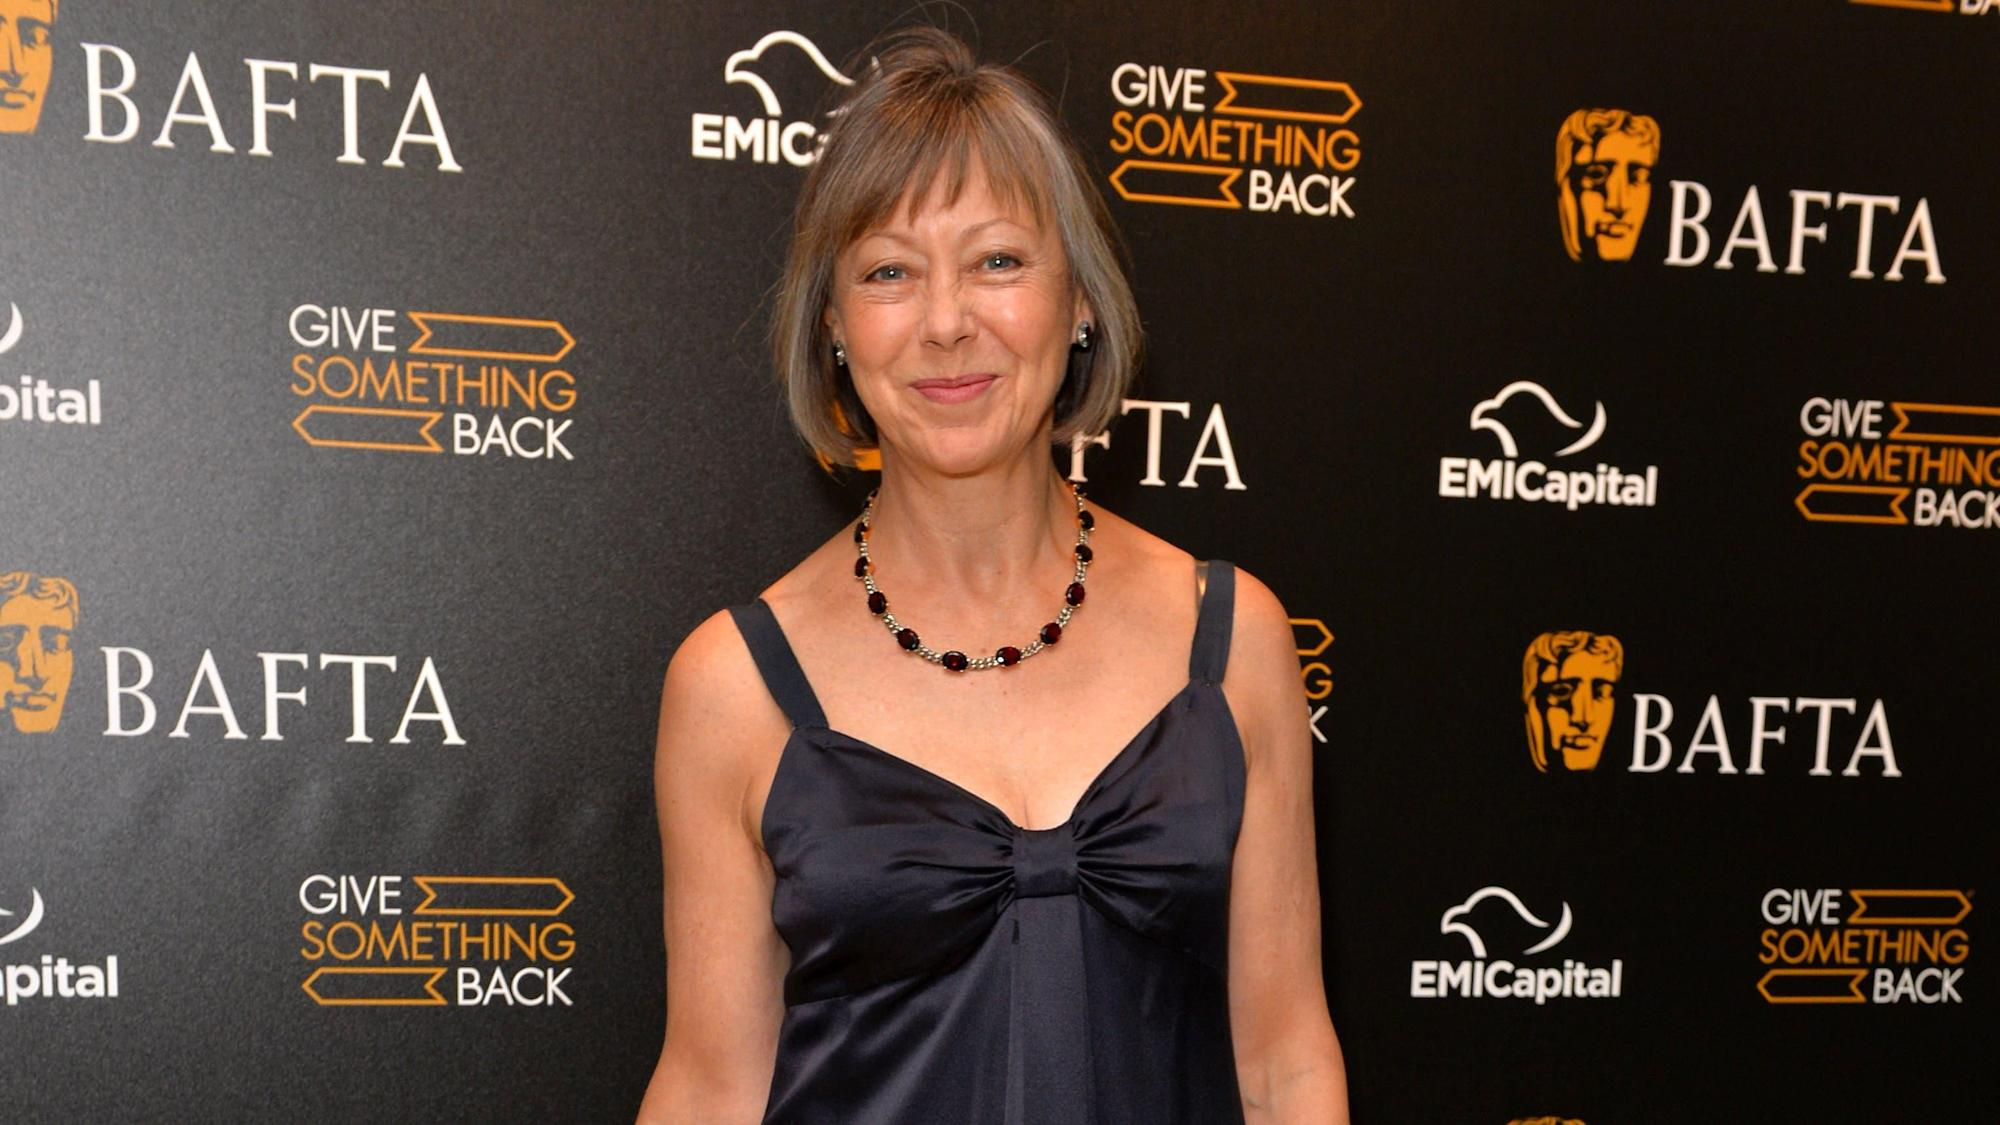 Jenny Agutter to reprise role for The Railway Children sequel 50 years later